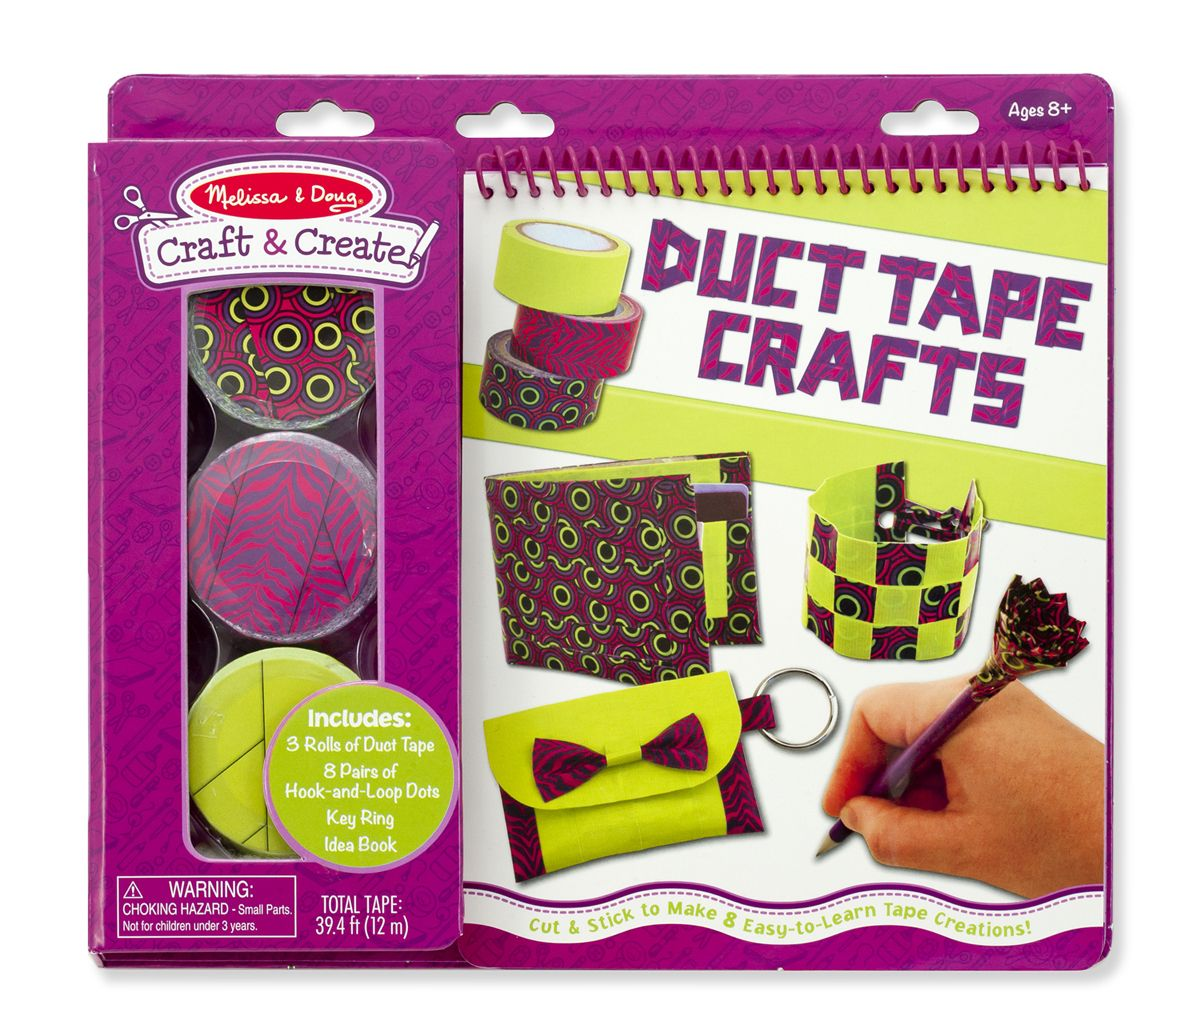 Duct tape crafts kits - Craft Kits With A Roll Of Duct Tape A Creative Crafter Can Do Just About Anything